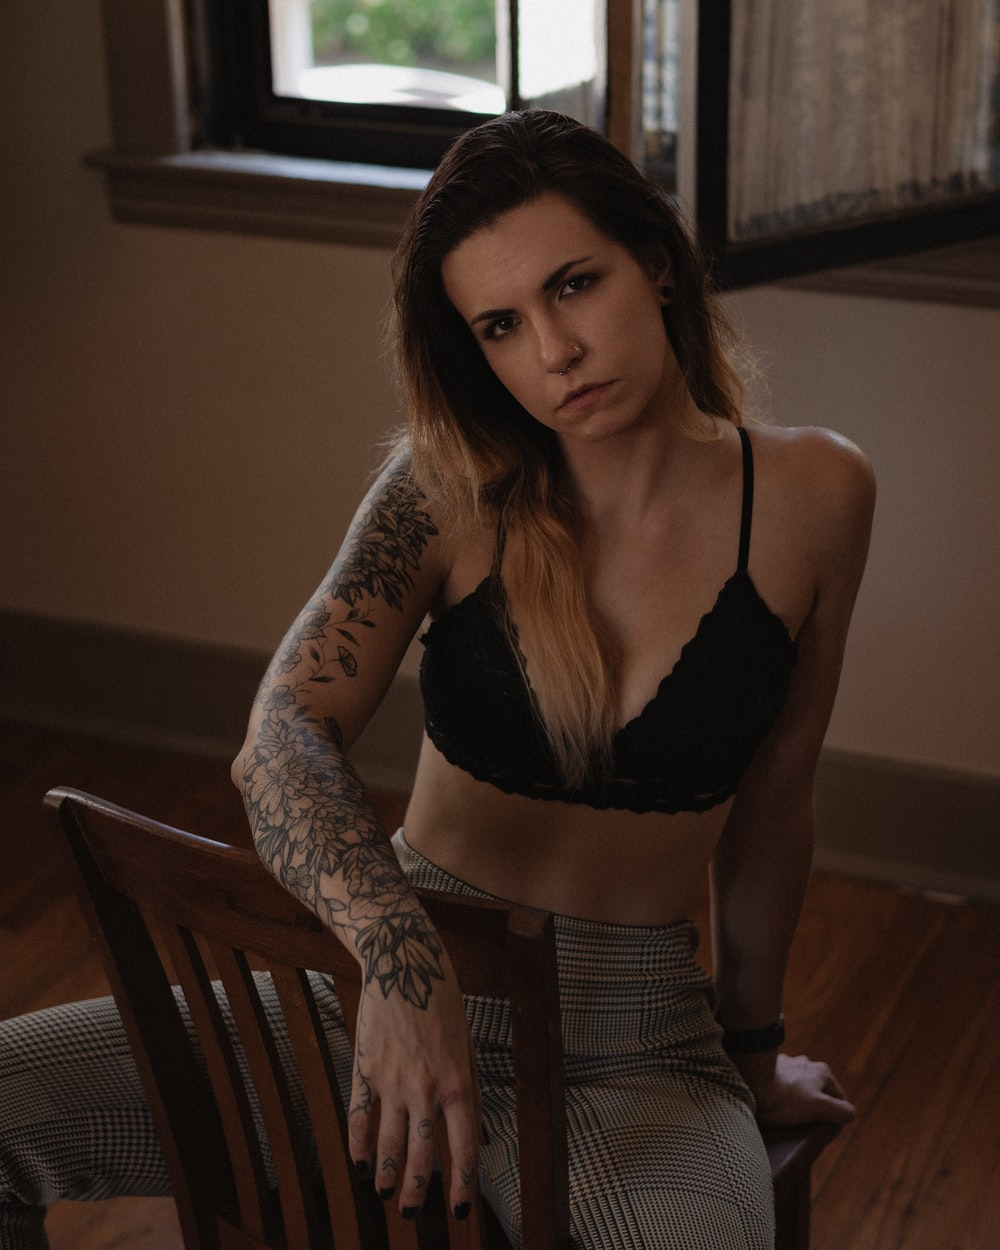 woman in black brassiere and gray pants sitting on brown wooden chair